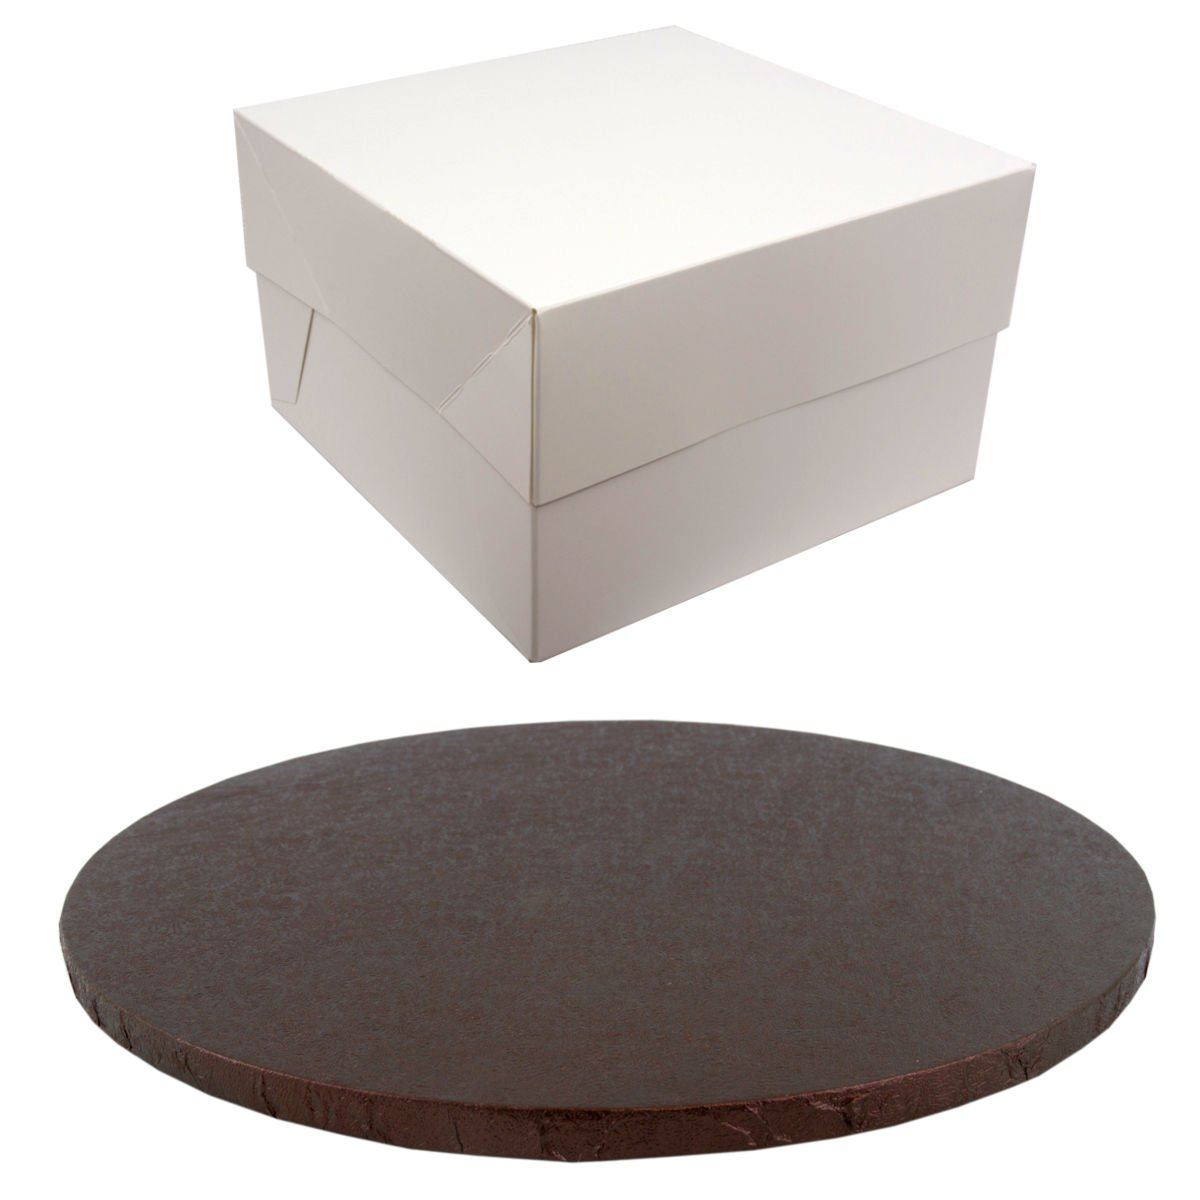 12 Inch Round Coloured Drum cake Board and white transporting Box Sets (Brown) Doric